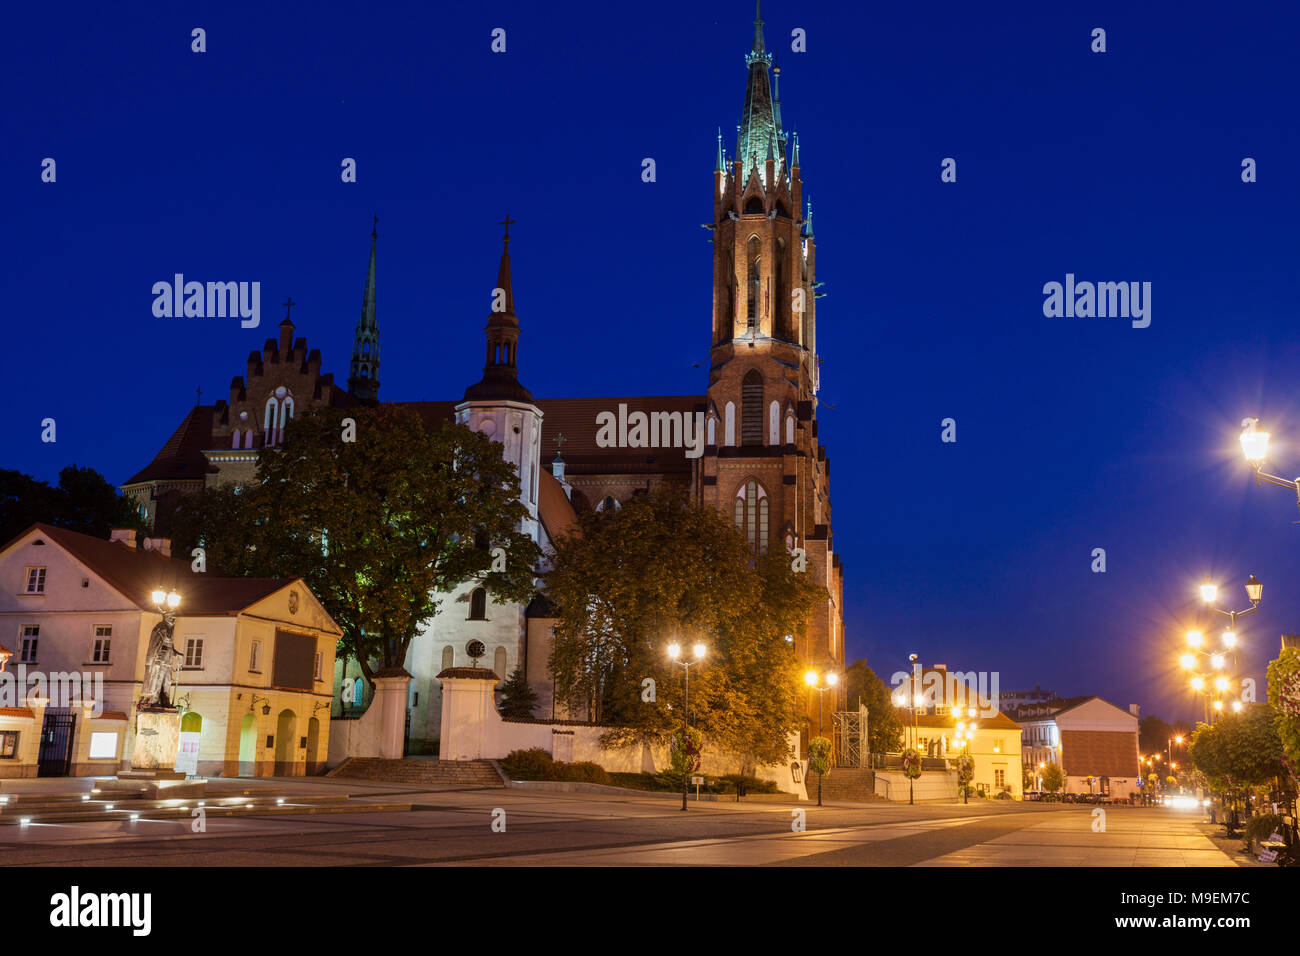 Cathedral Basilica of the Assumption of the Blessed Virgin Mary in Bialystok. Bialystok, Podlaskie, Poland. - Stock Image